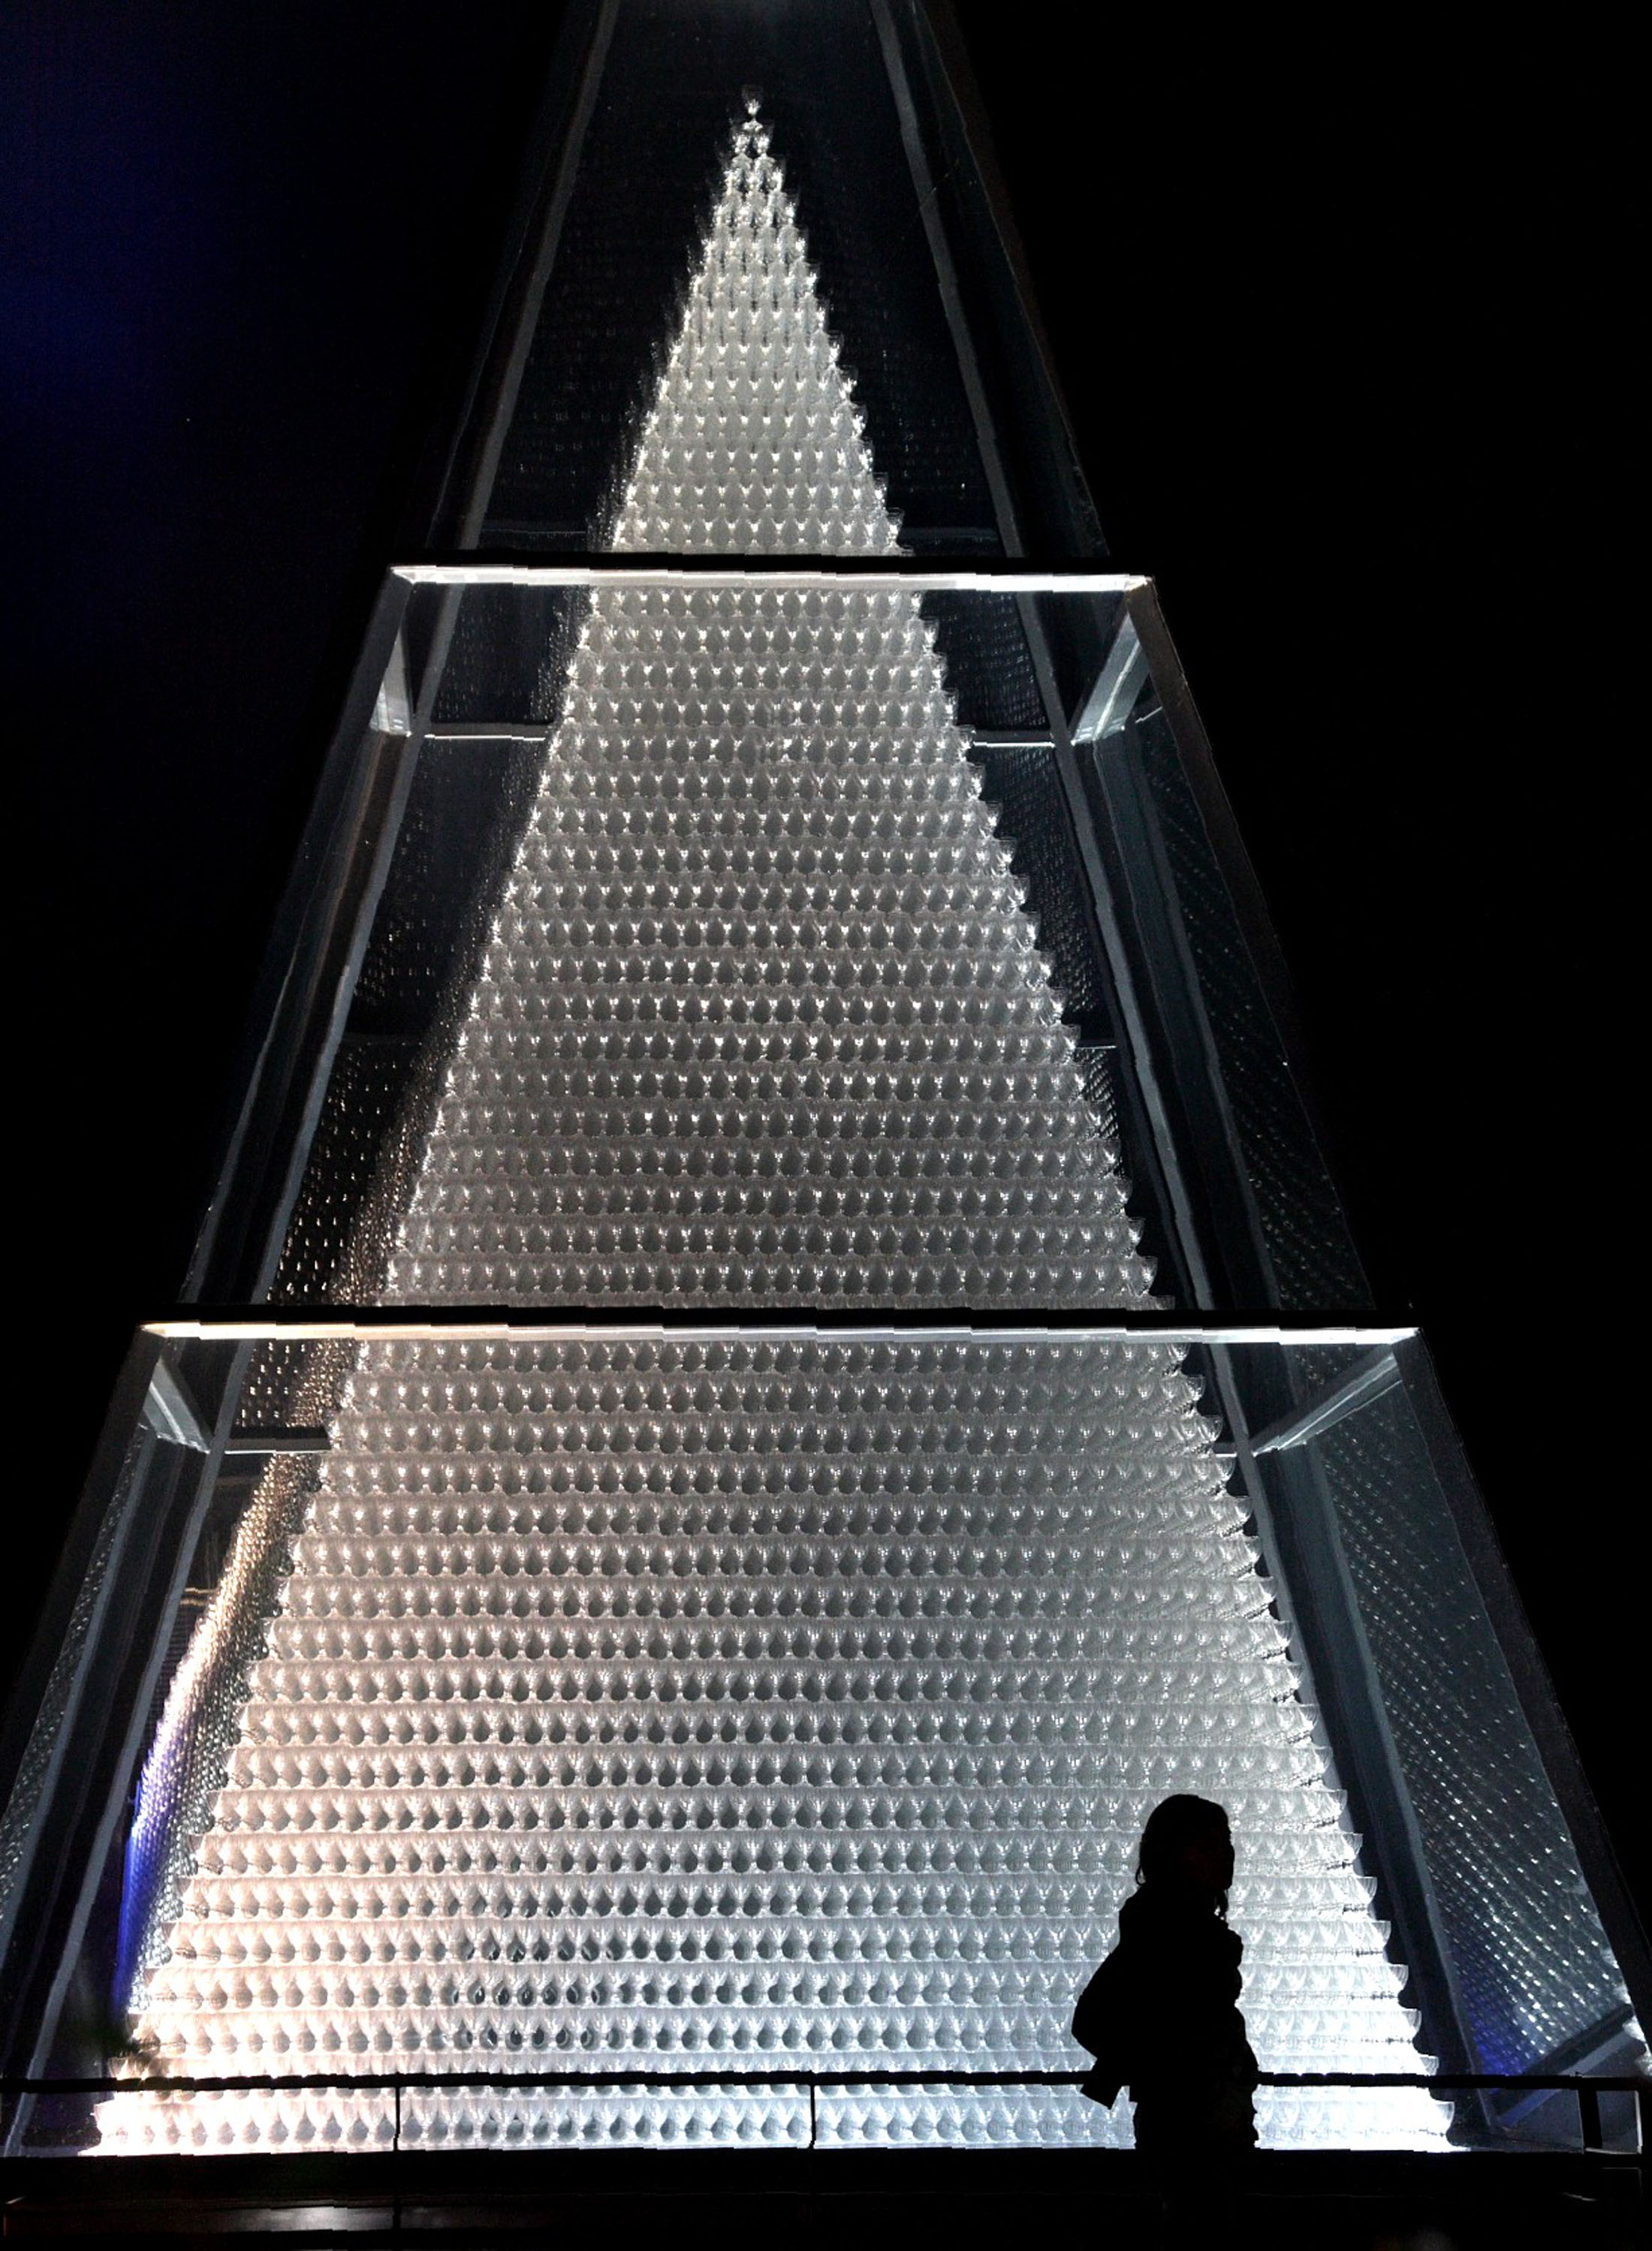 The largest glass pyramid in the world - Glaspyramide in Zwiesel